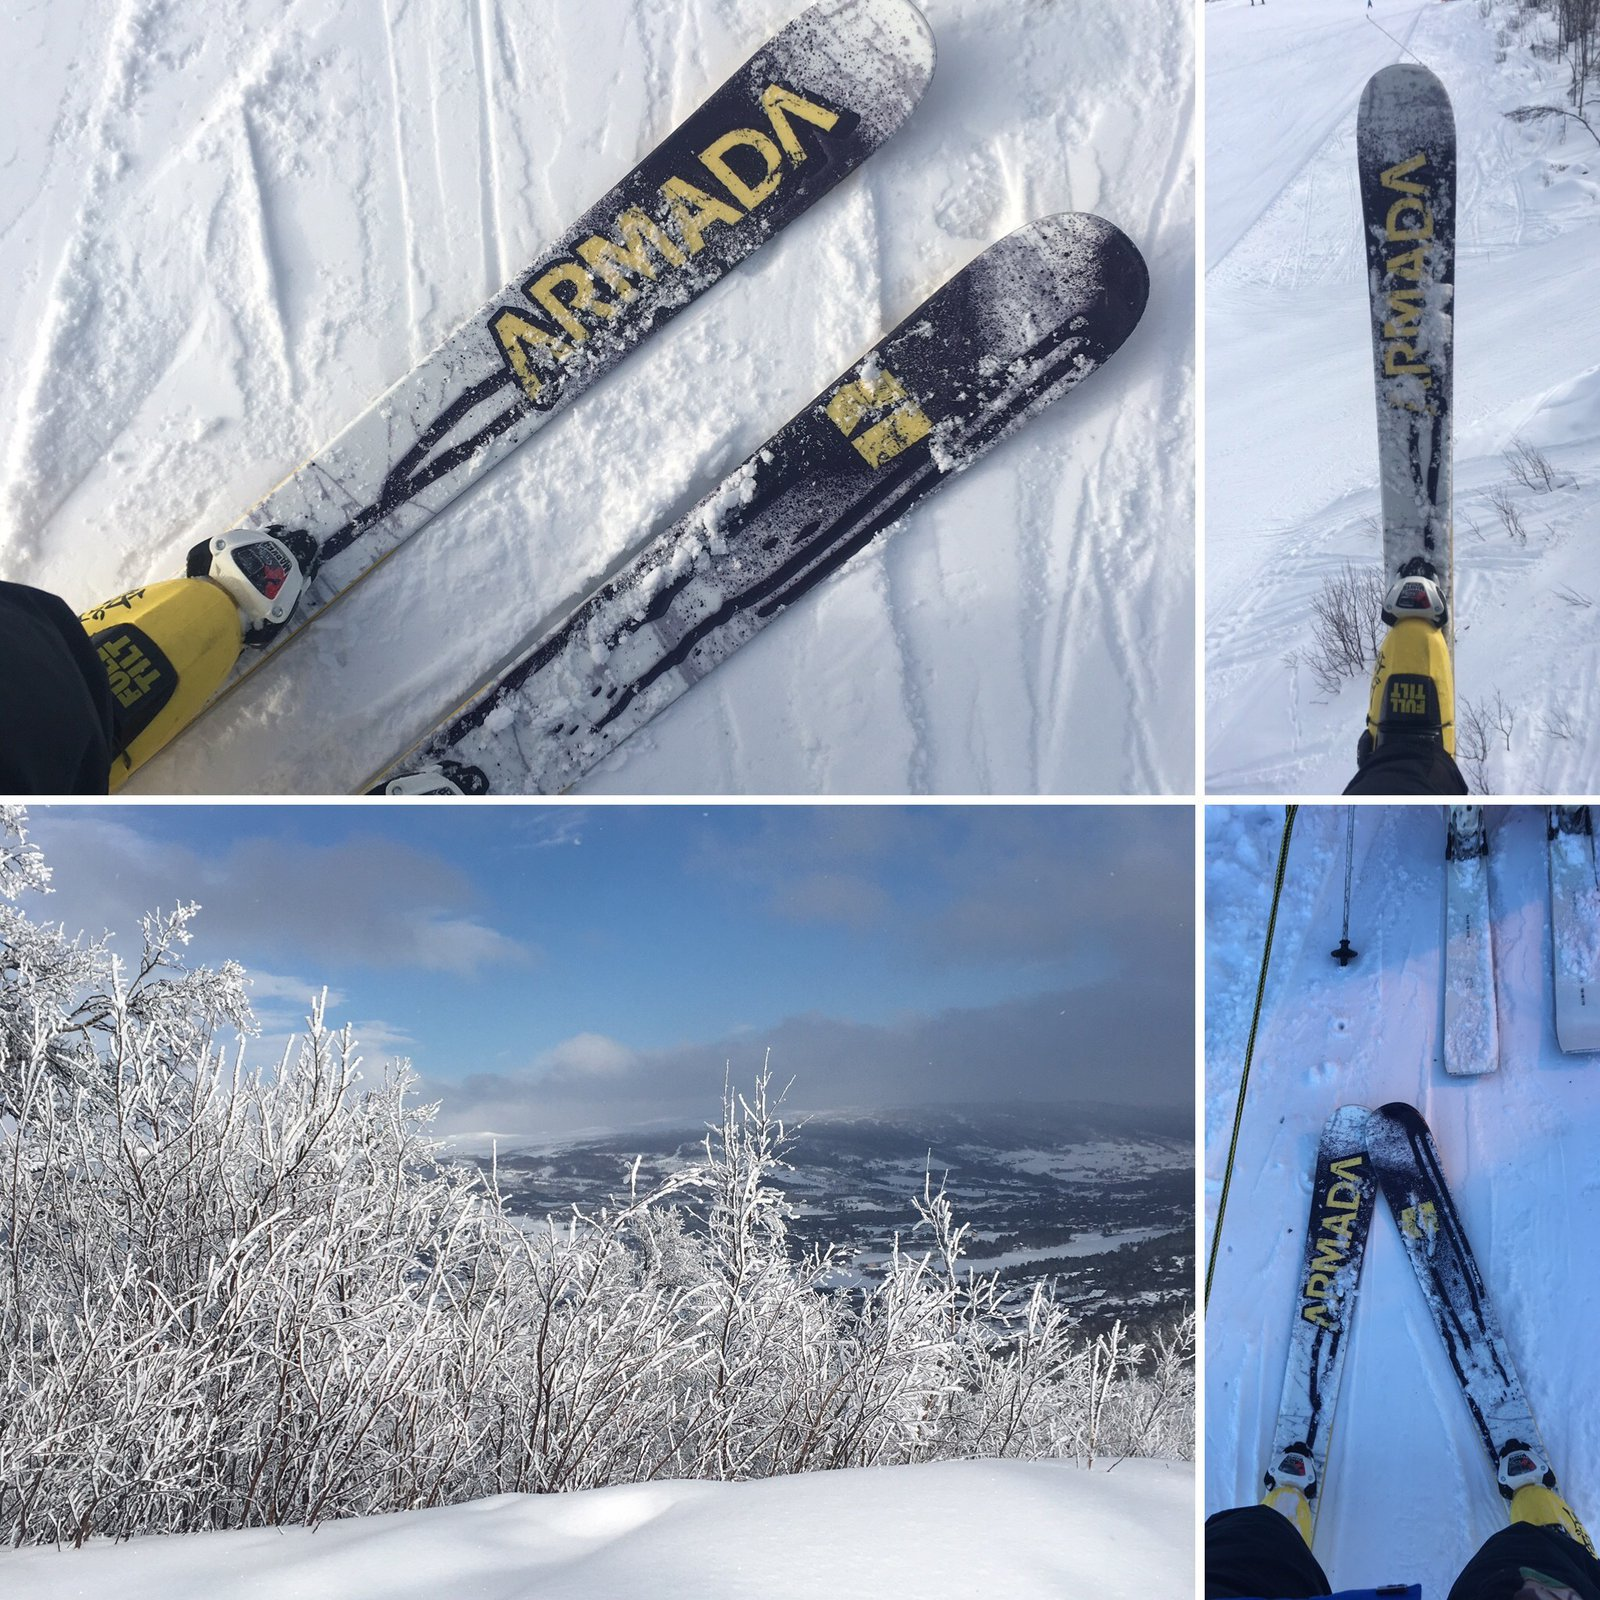 Winter, skis and snow